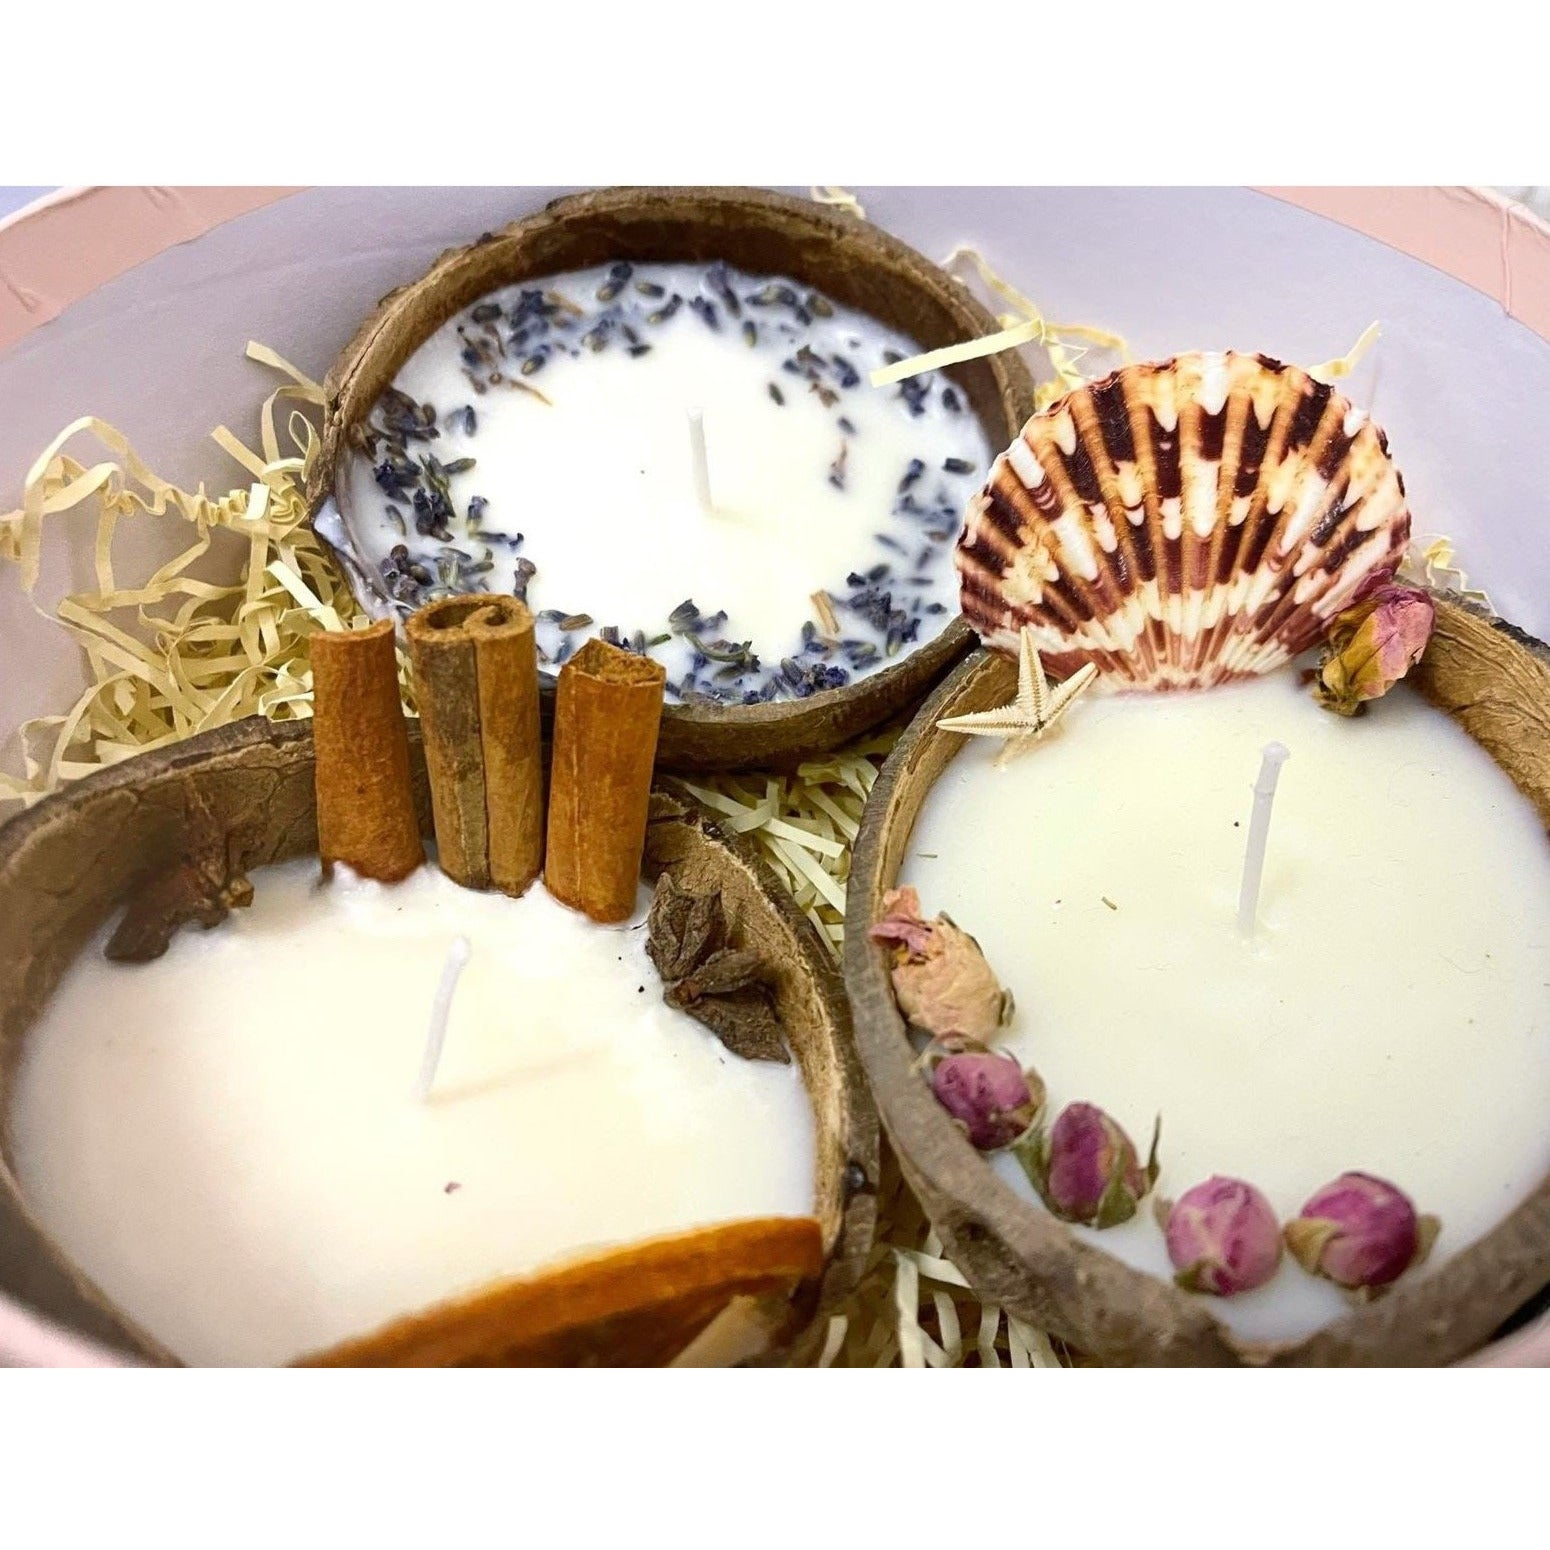 3 Coconut Candles Gift Set with Coconut & Vanilla, Lavender, Cinnamon&Orange gentle scented Soy candles in coconut shell, PRE-ORDER delivery around 10th of December - natoorio